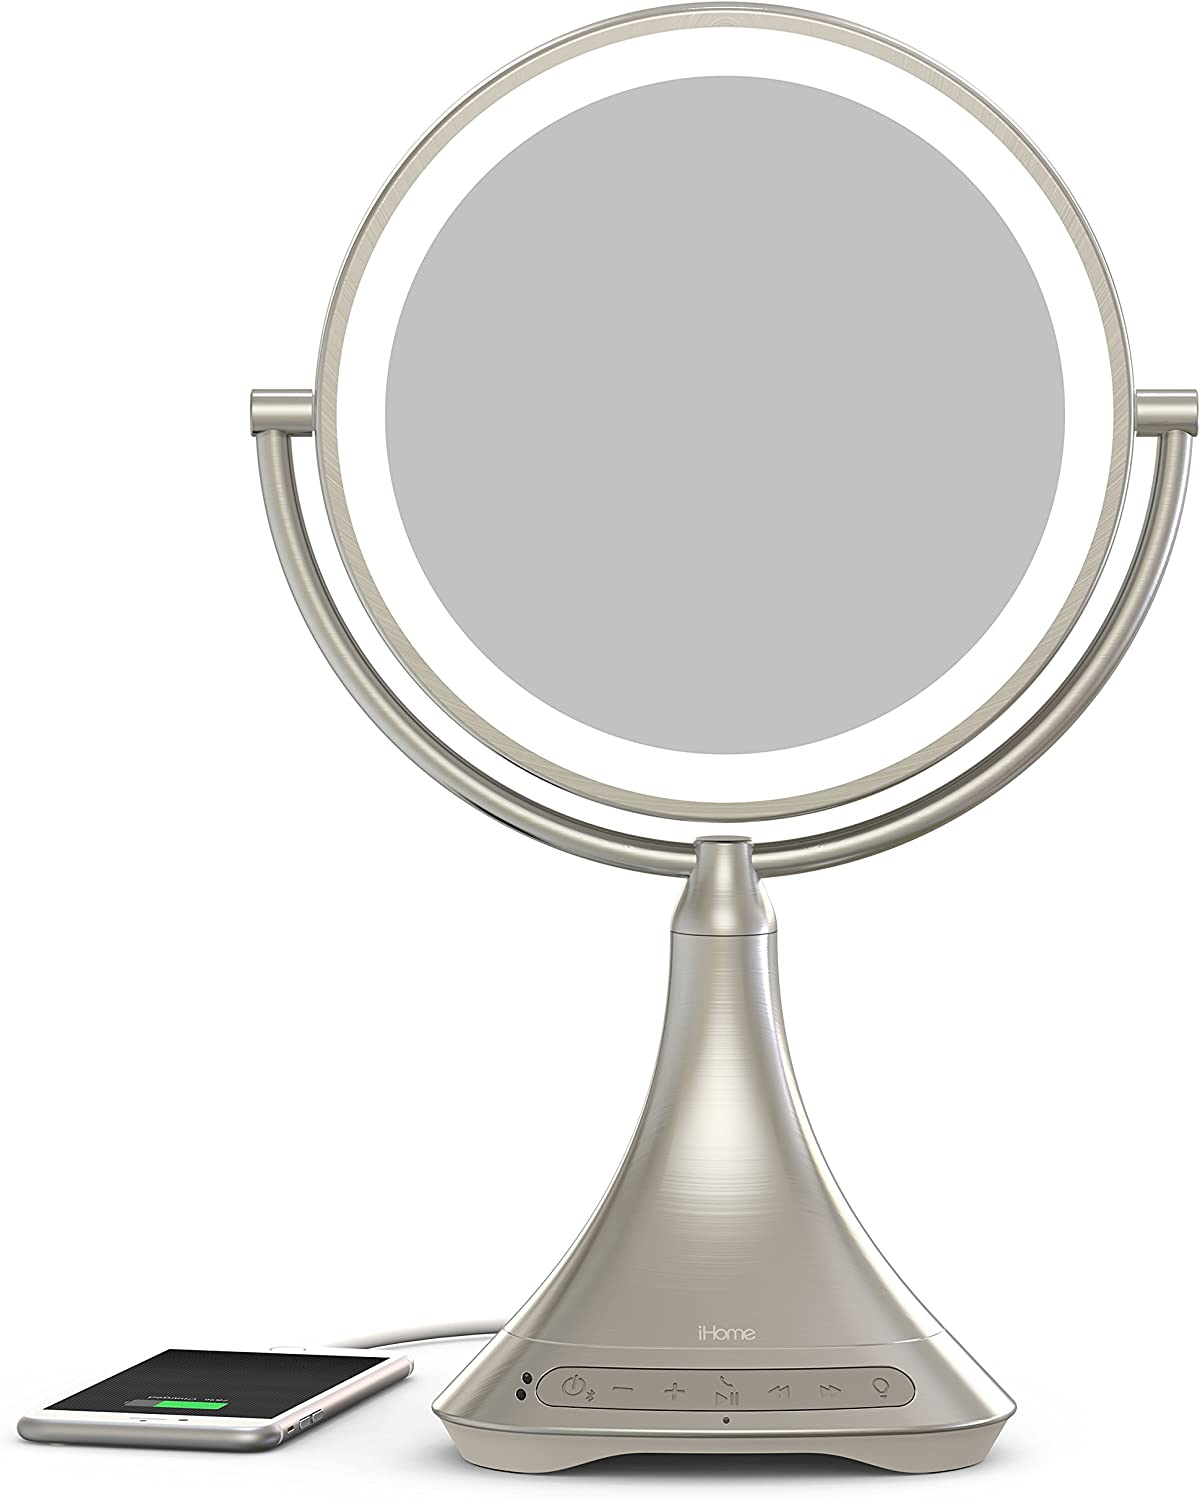 iHome All-in-One, 7X Magnify, 9 2-Sided LED Makeup Mirror, Bright LED Light Up Mirror, Natural Light, Double-Sided Vanity Mirror, Hands-Free Speakerphone, Bluetooth Audio Phone Charger